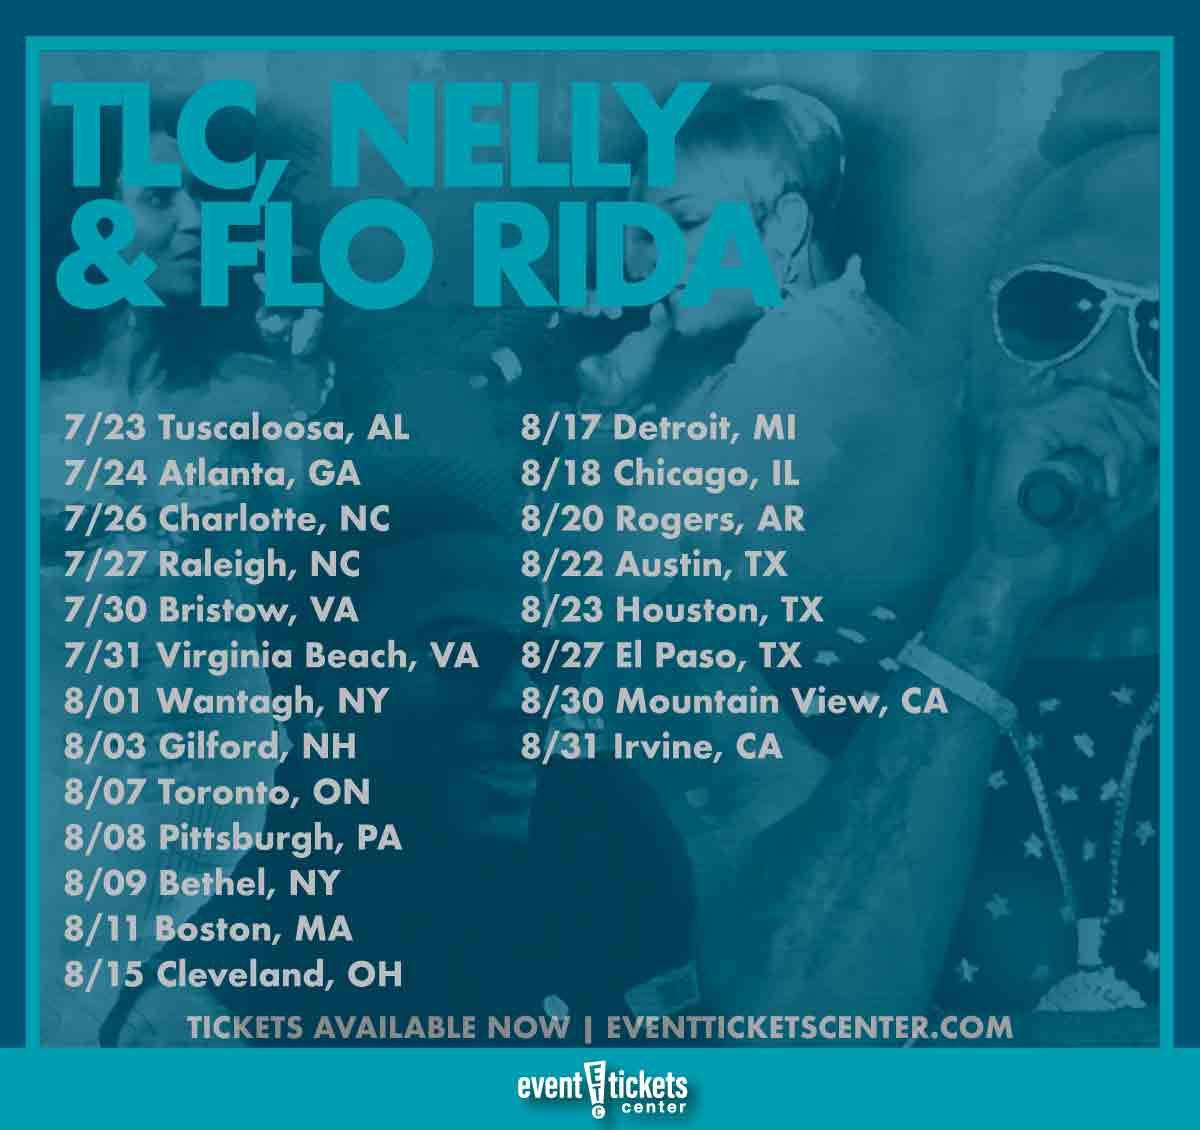 nelly tlc and flo rida tour dates